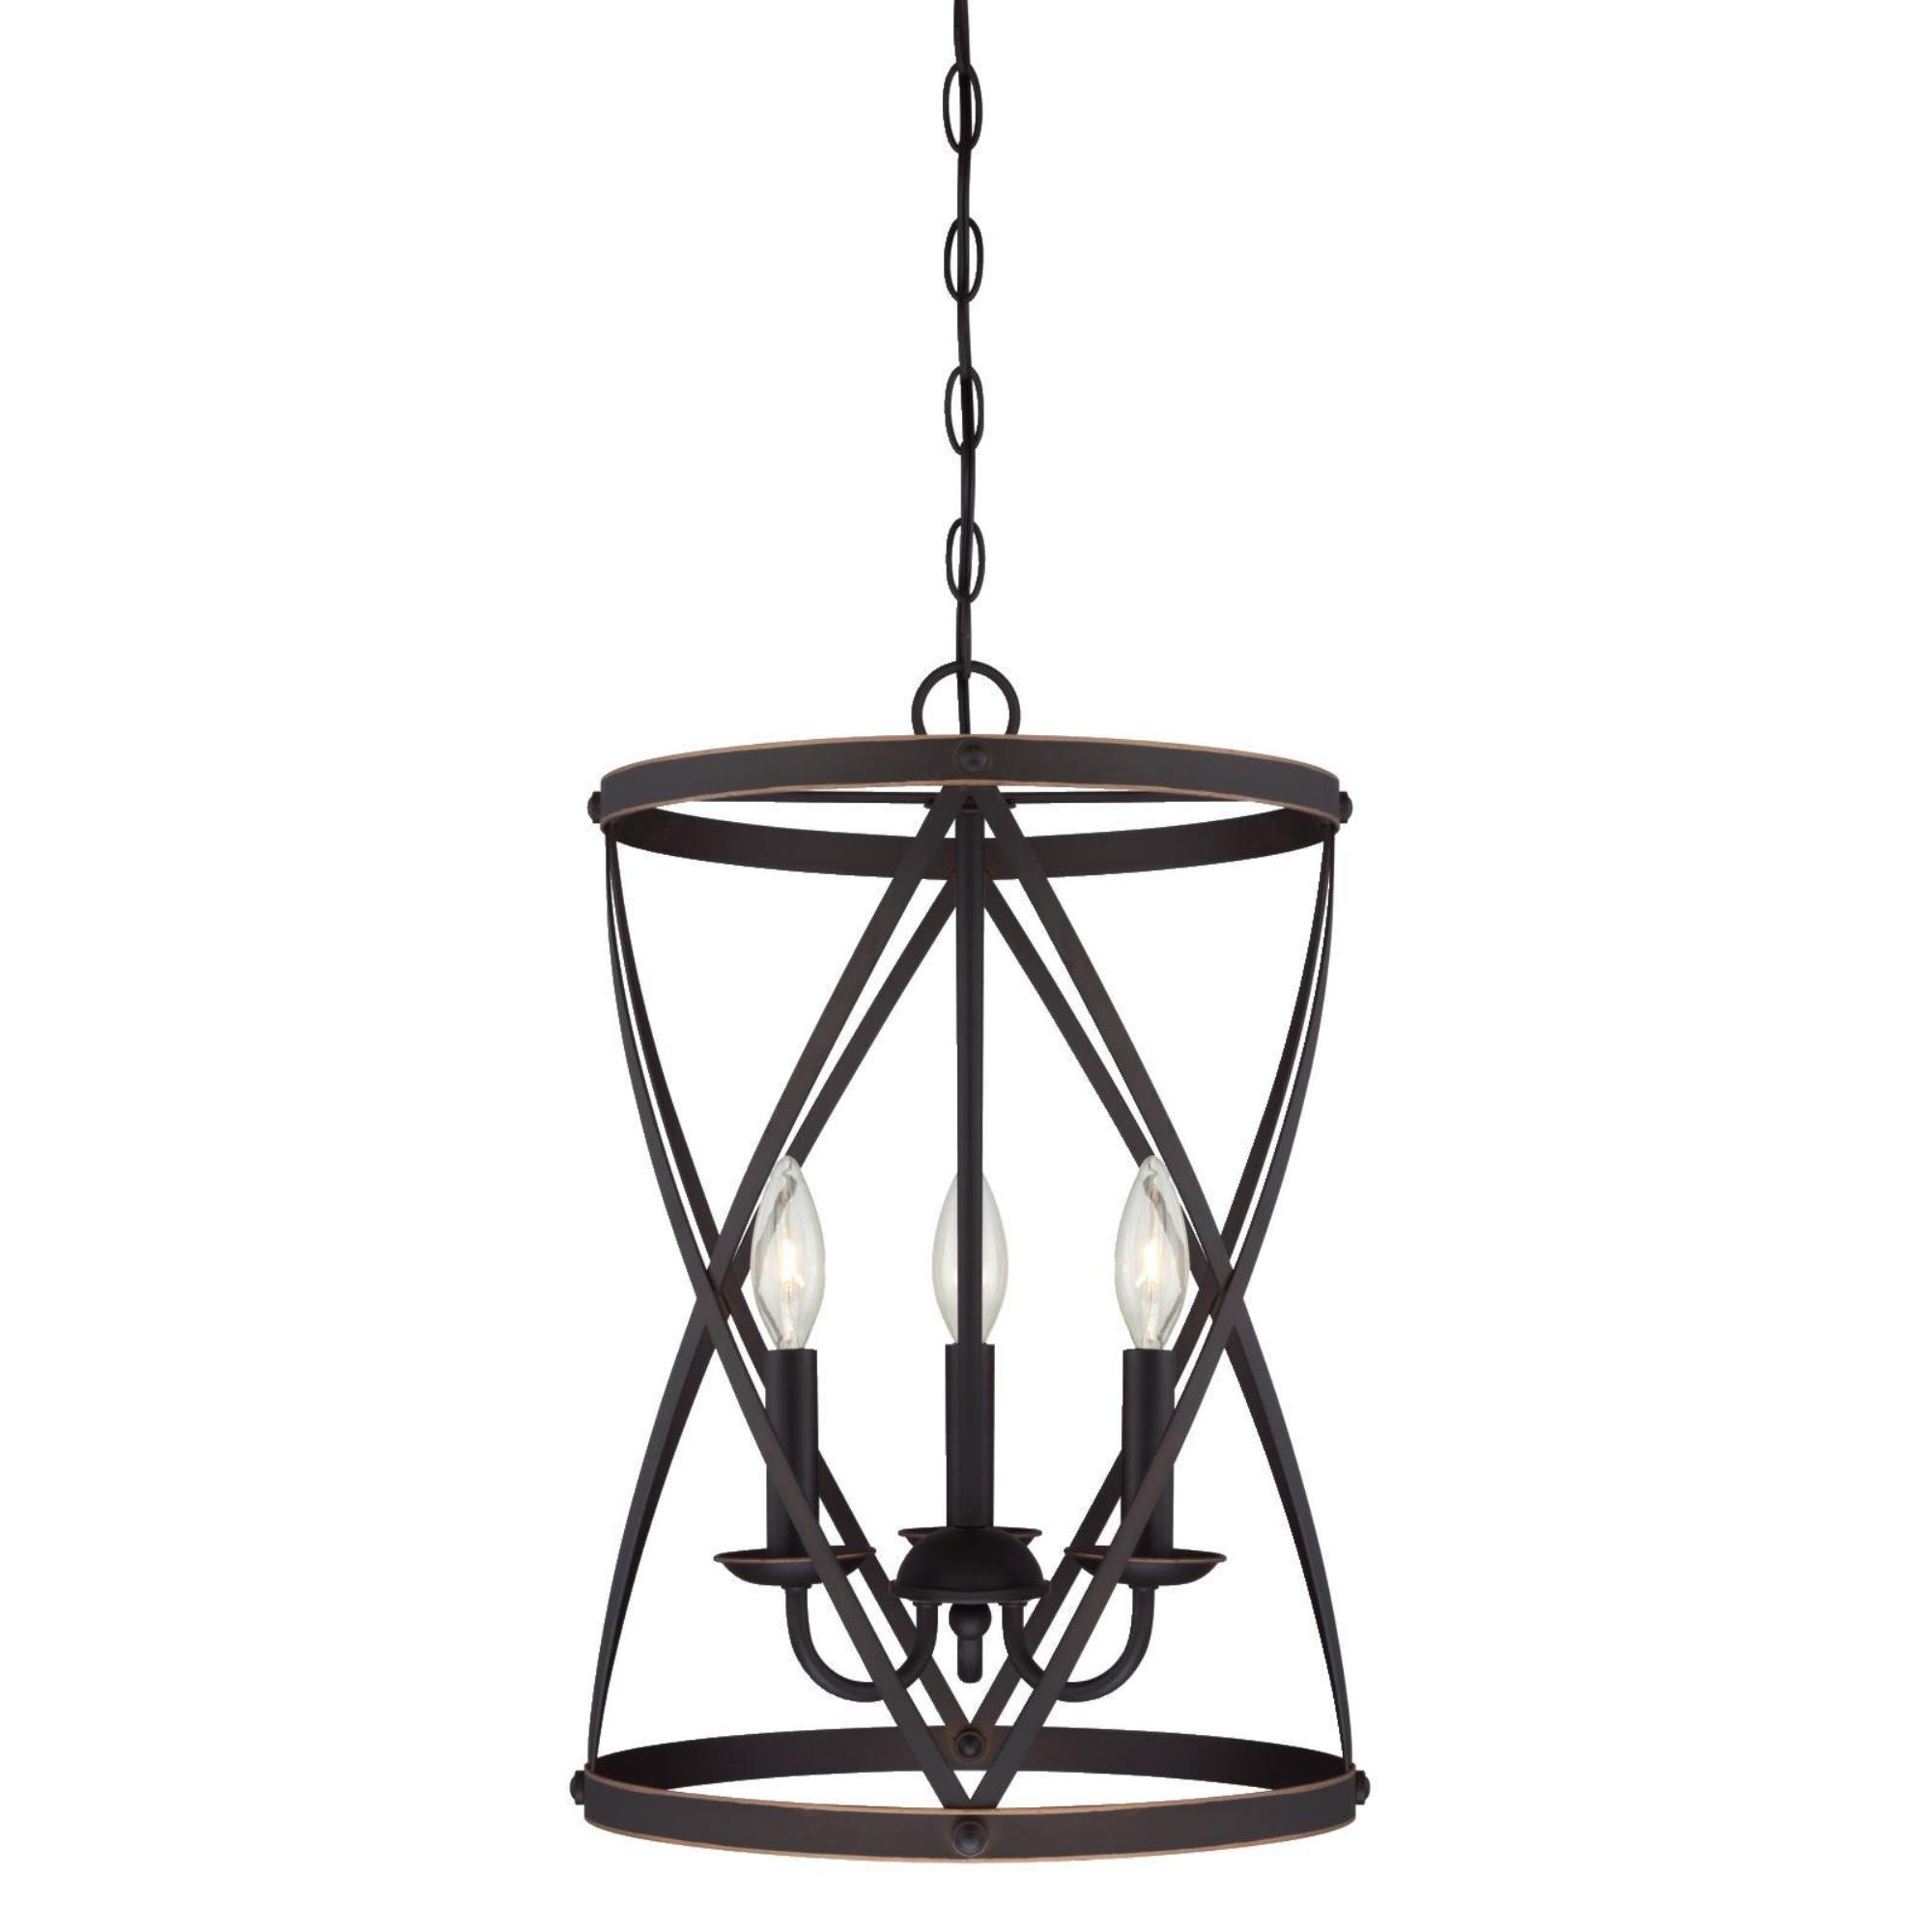 Westinghouse 6303700 Isadora Three-Light Indoor Chandelier, Oil Rubbed Bronze Finish with Highlights by Westinghouse